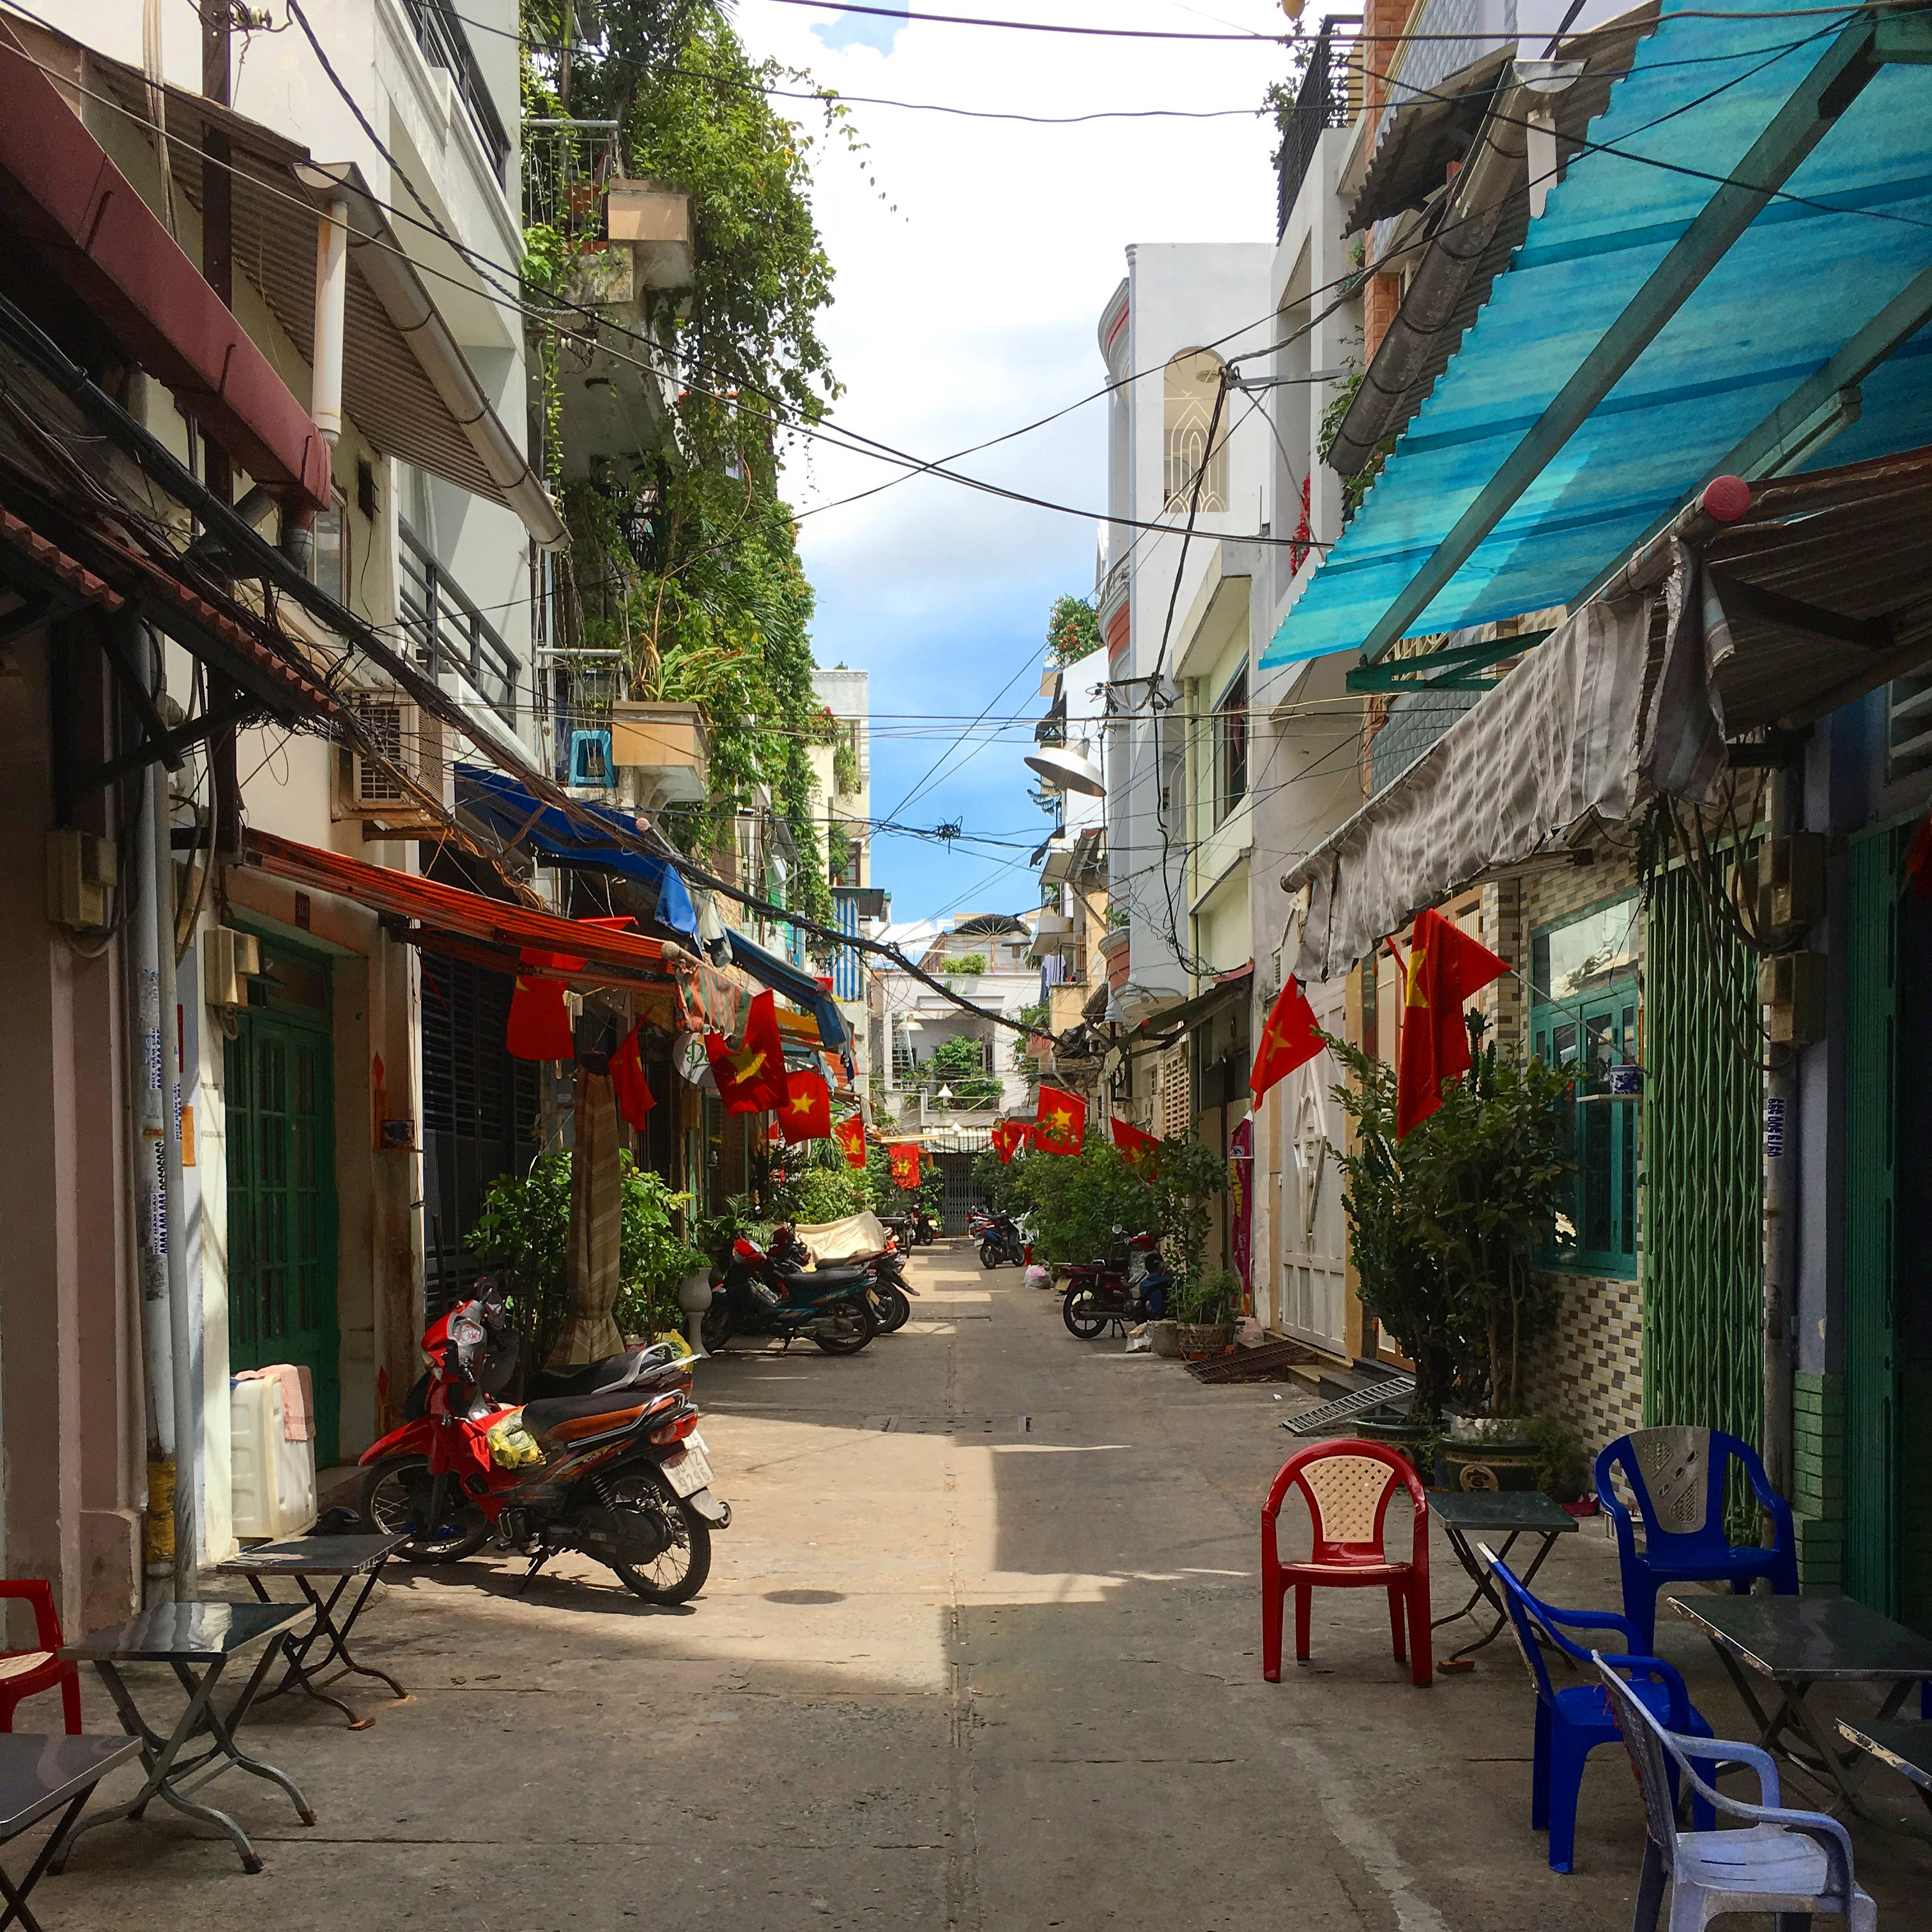 An alley in Ho Chi Minh City decked out with flags for Vietnam's Independence Day celebration